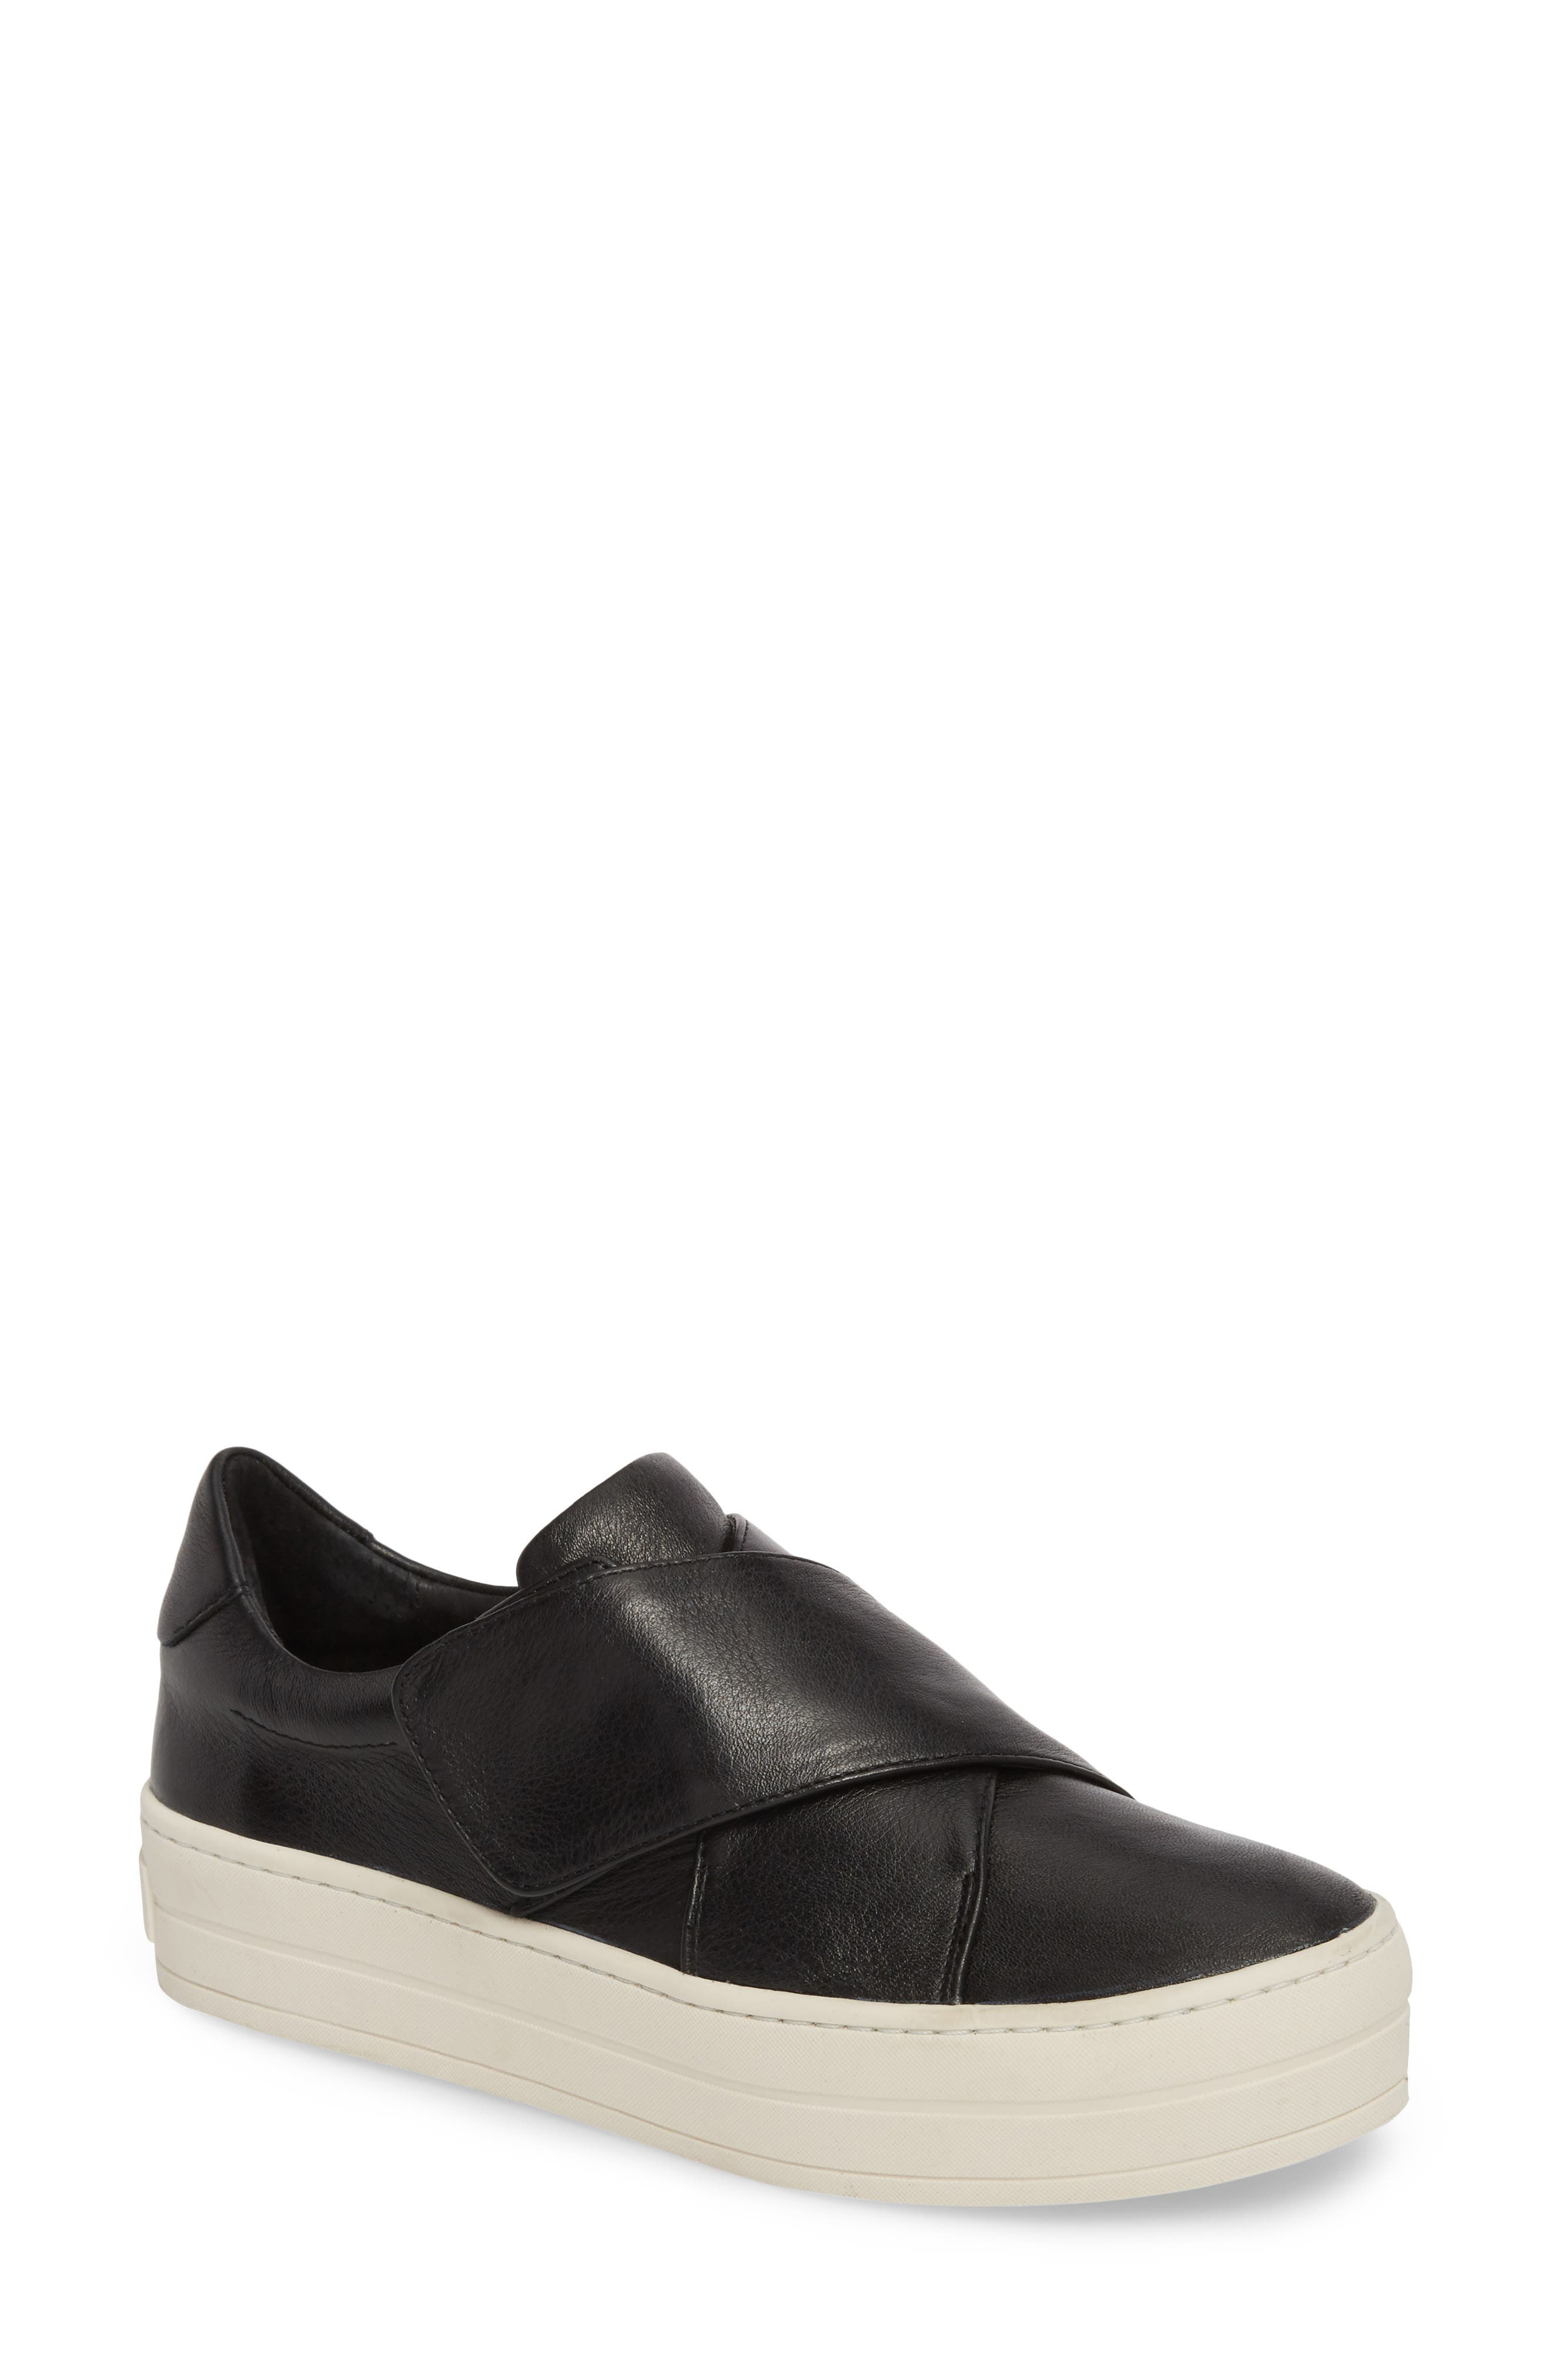 Harper Sneaker,                         Main,                         color, BLACK LEATHER